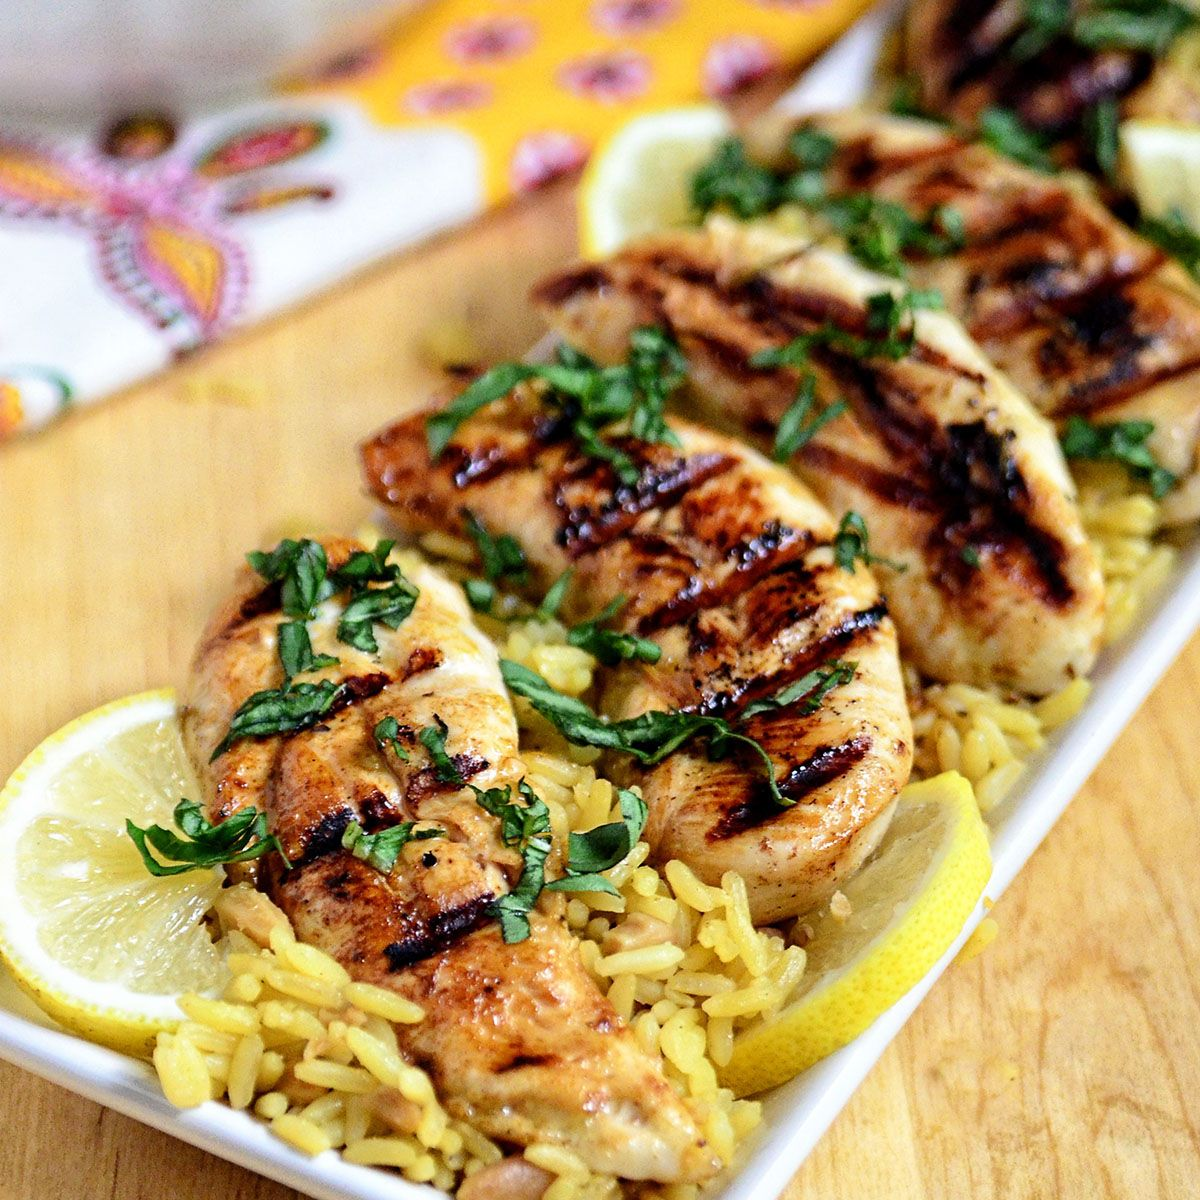 Lemon Rosemary Grilled Chicken images